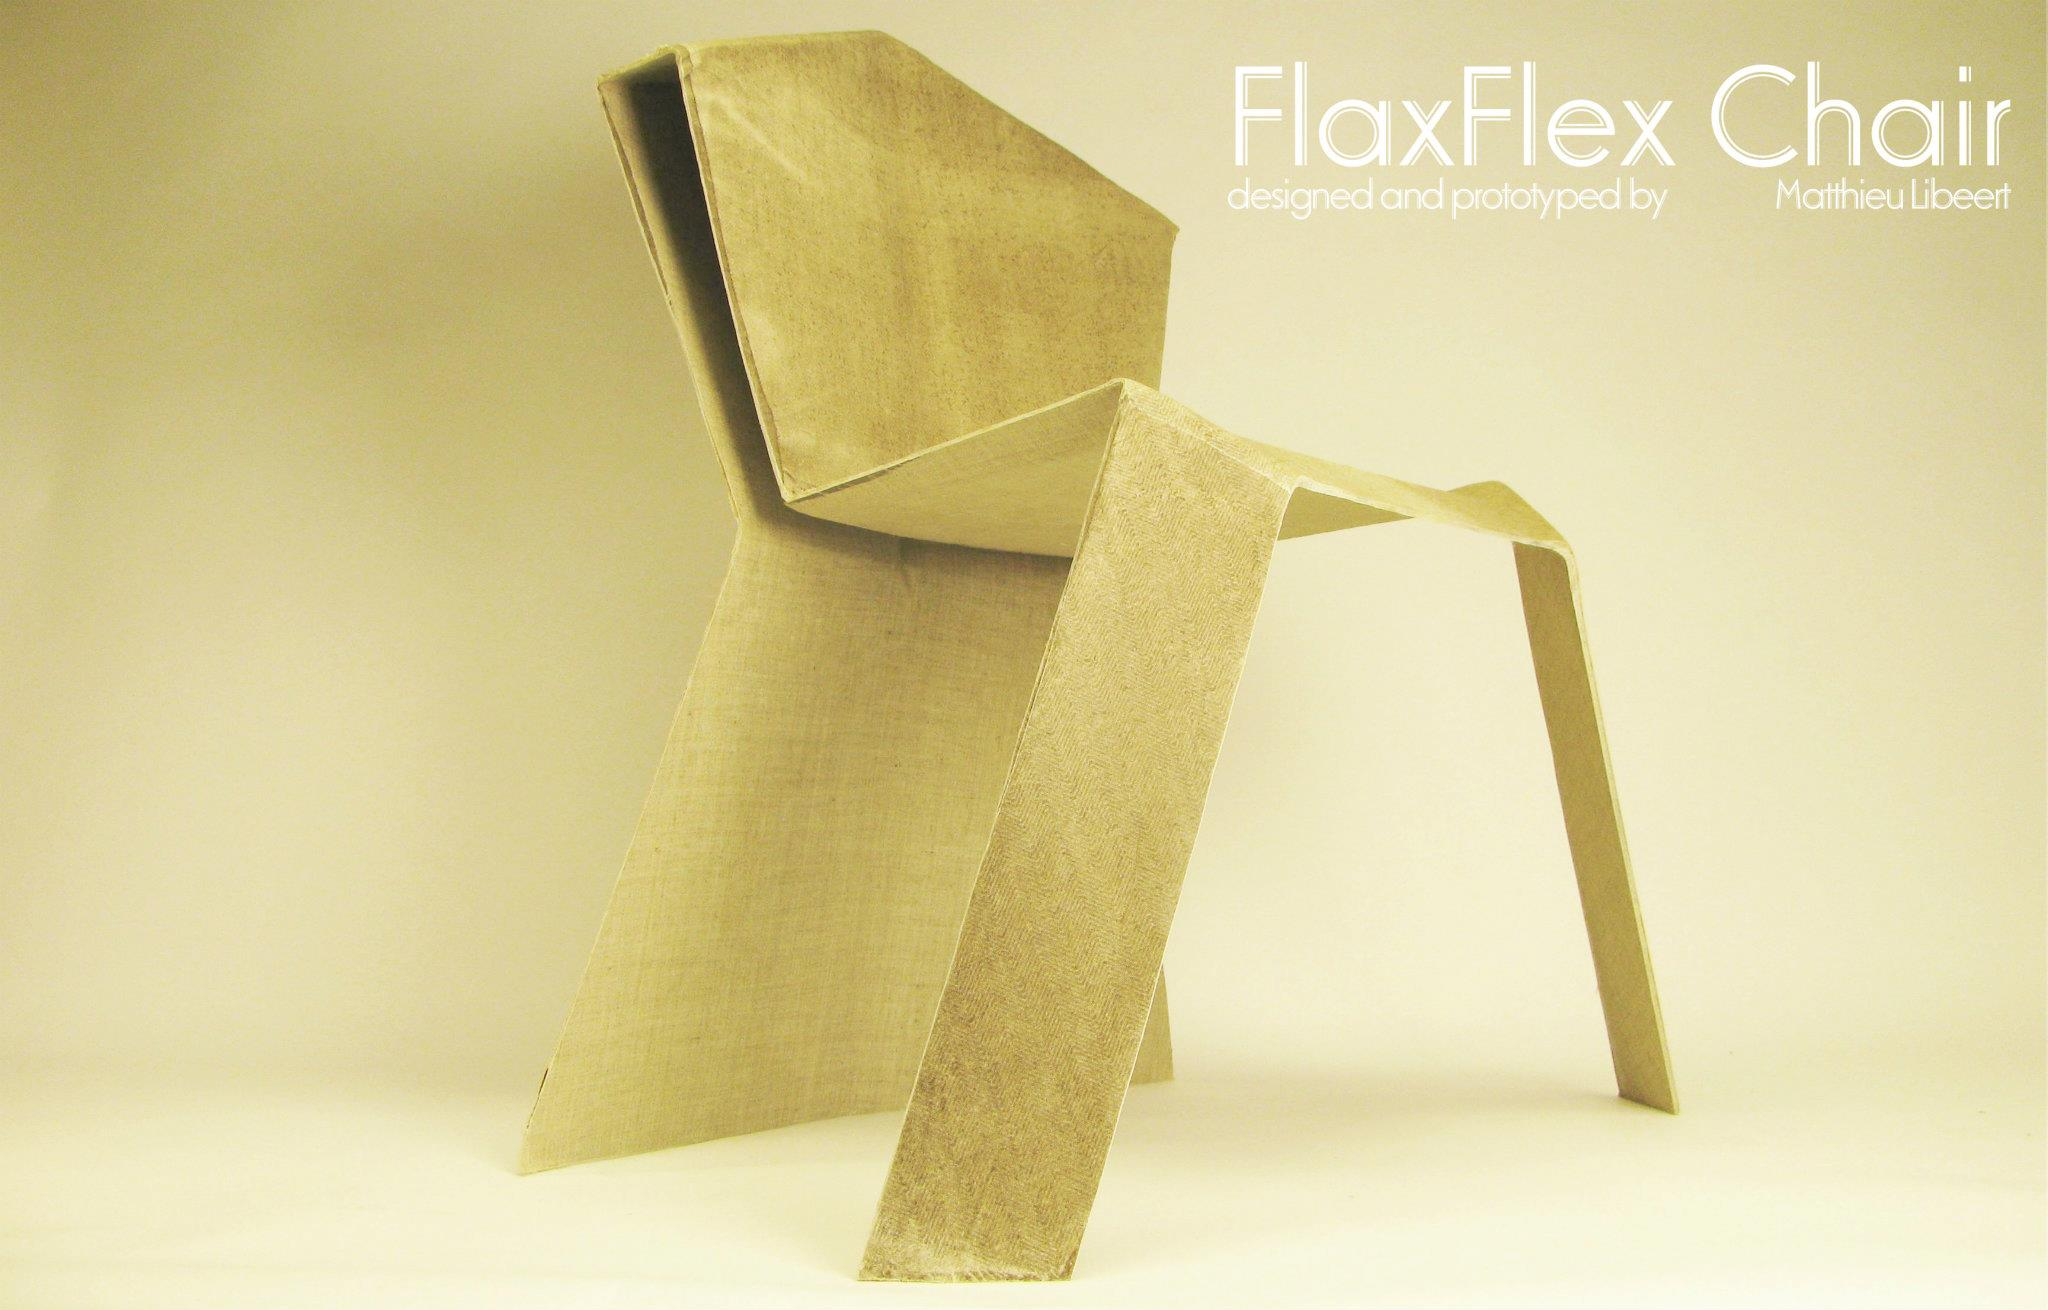 Flax Fiber Chair - Making of